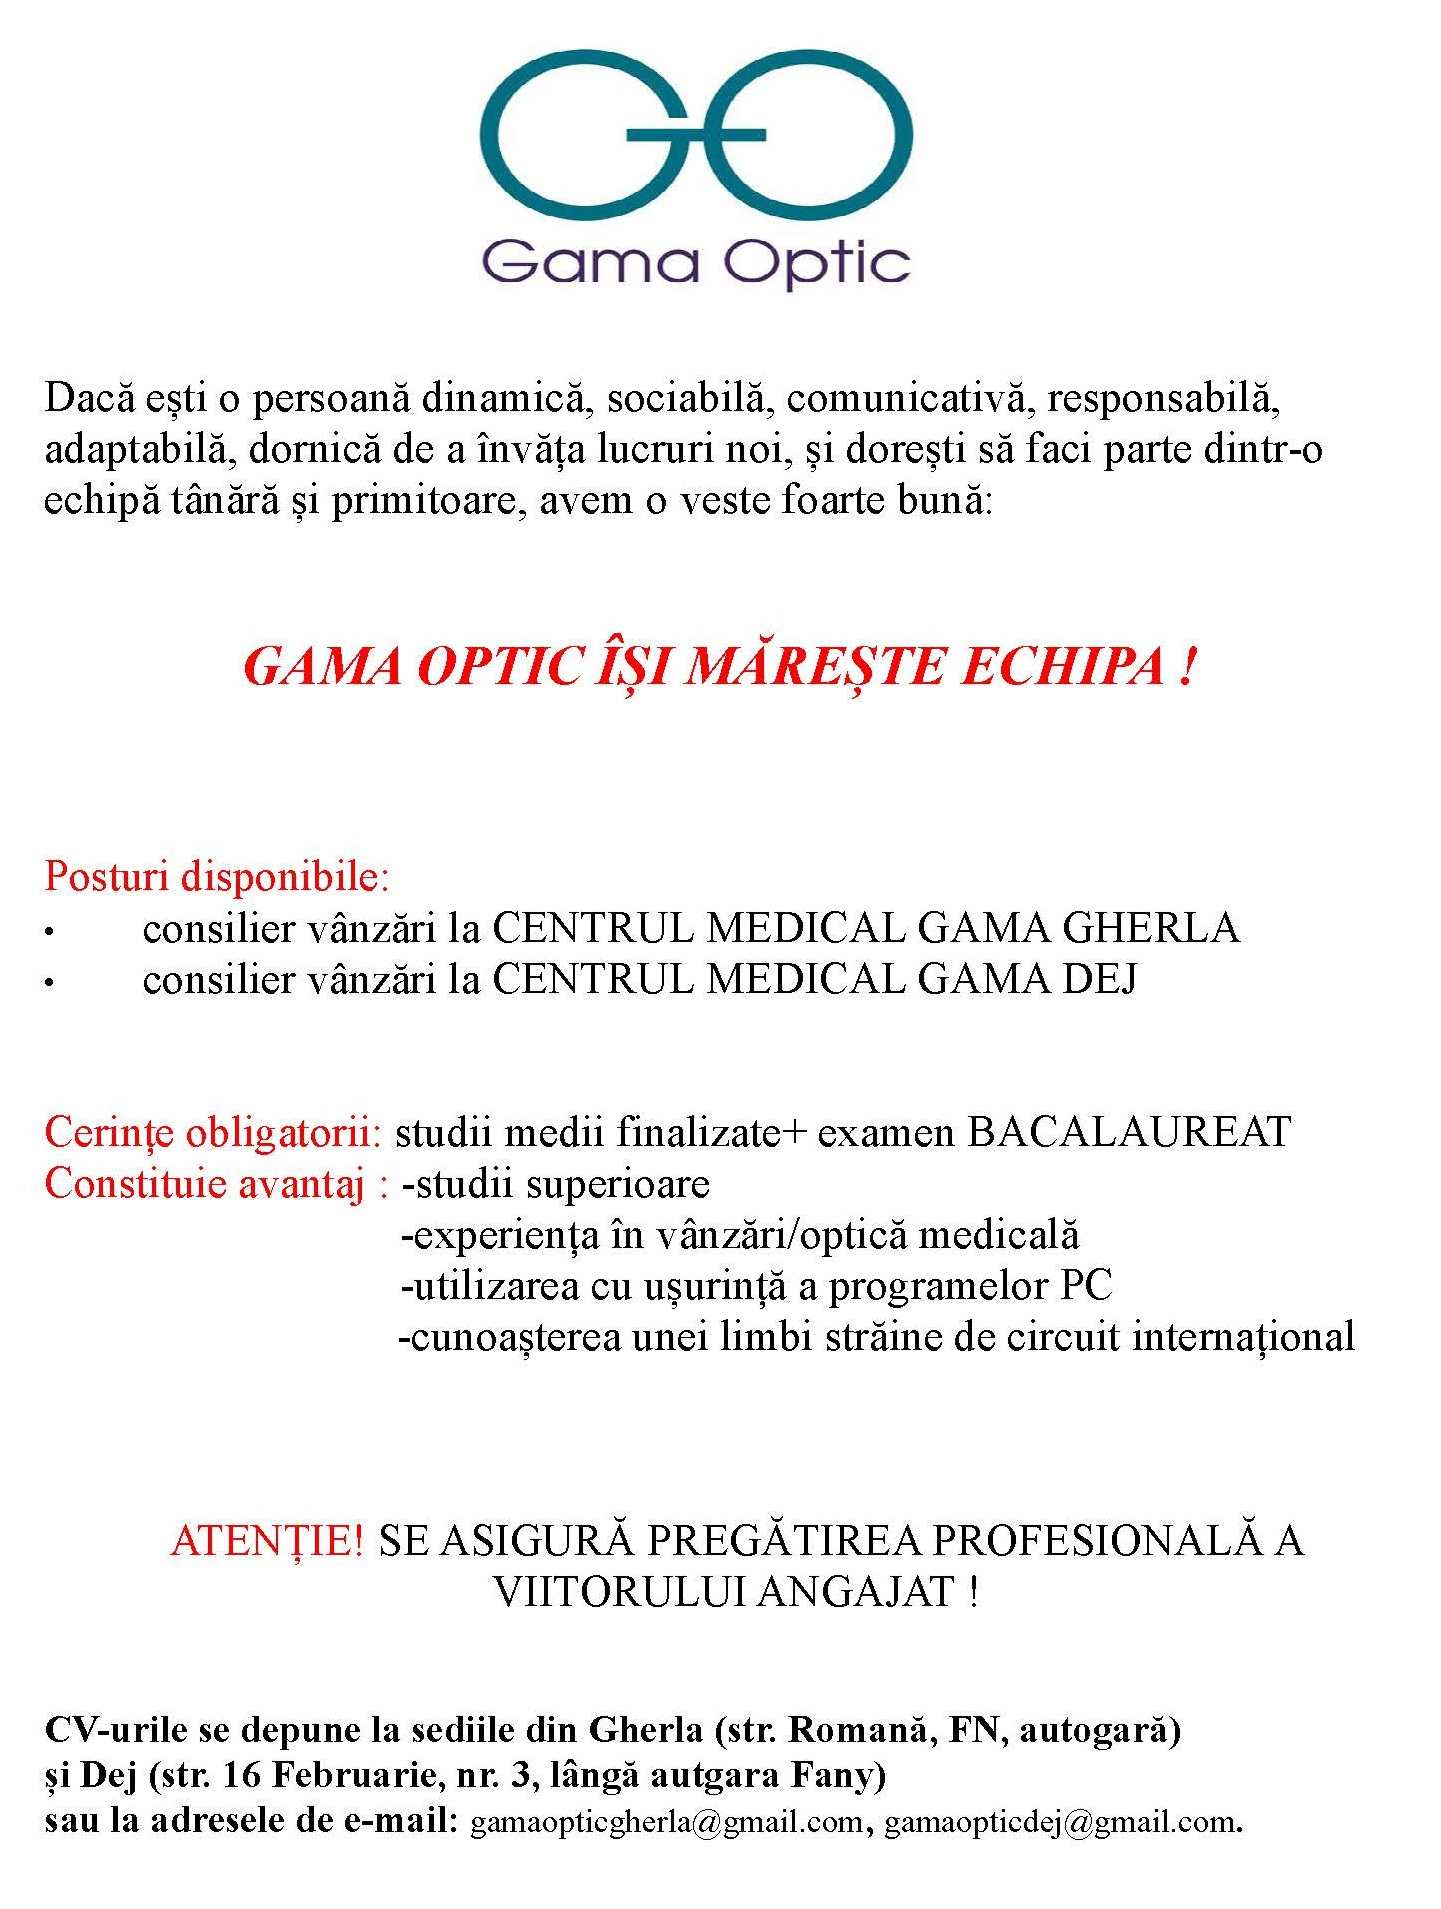 gama optic